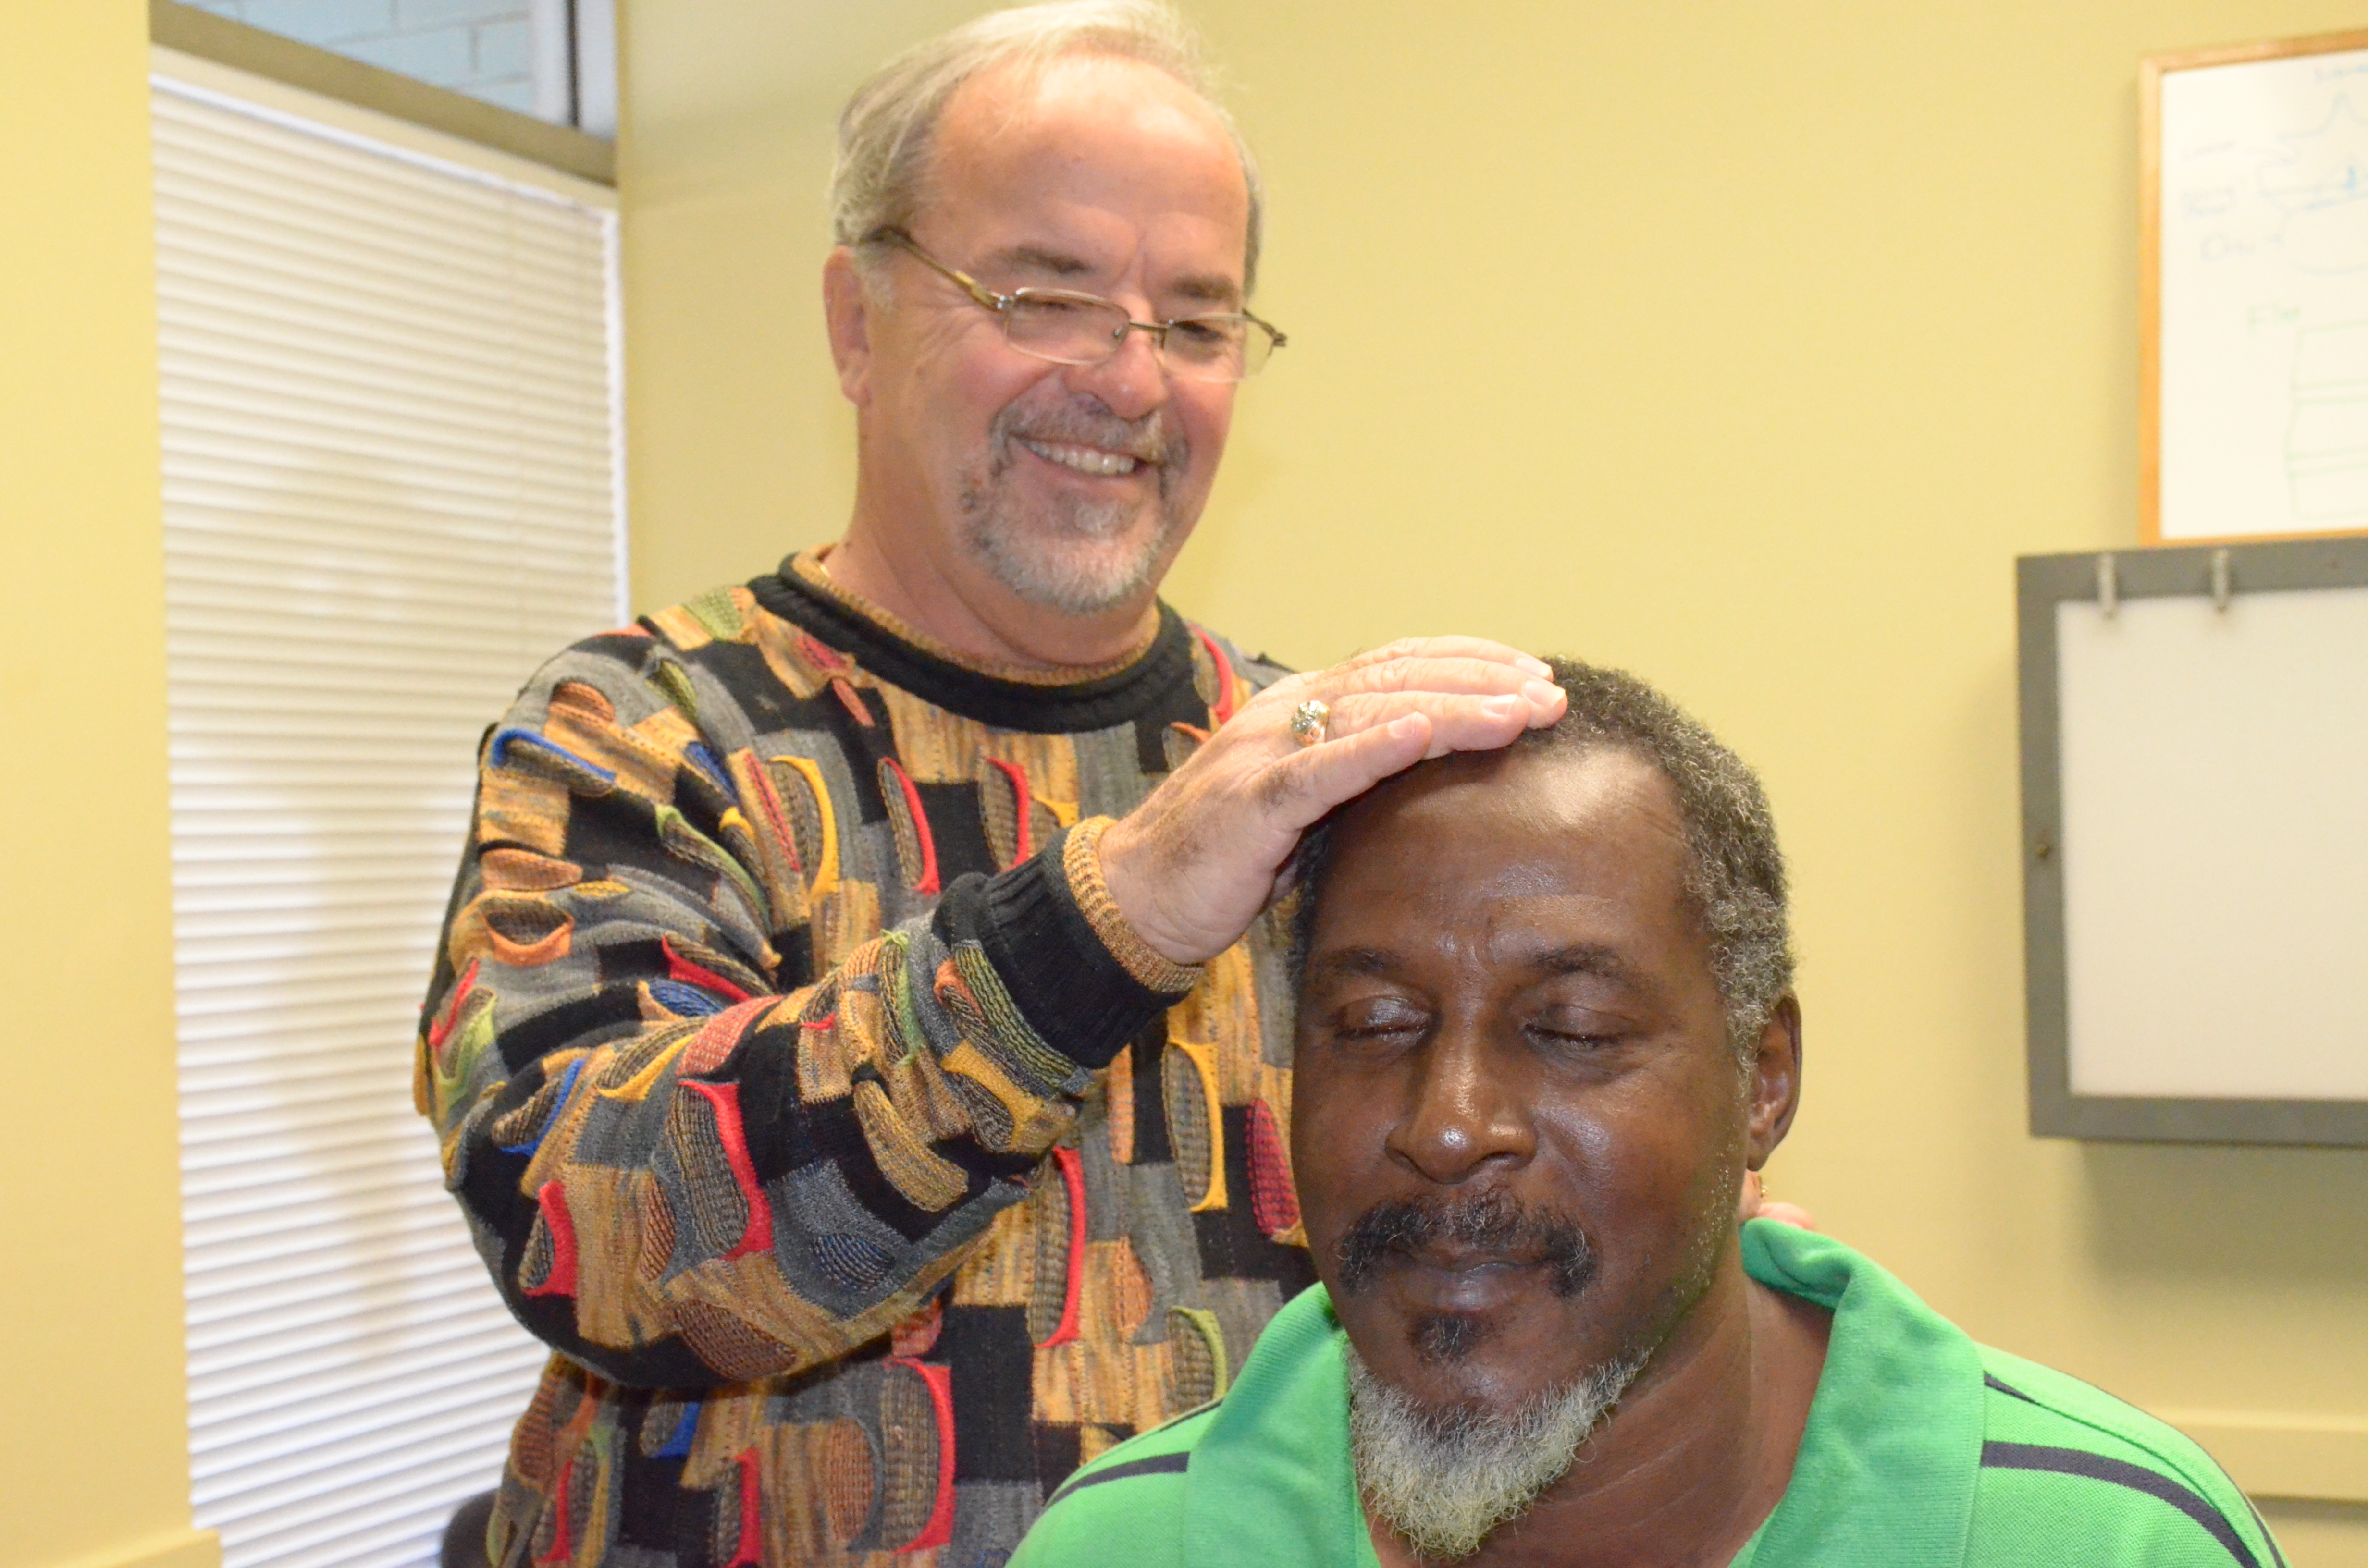 chiropractor adjusting male patient's neck